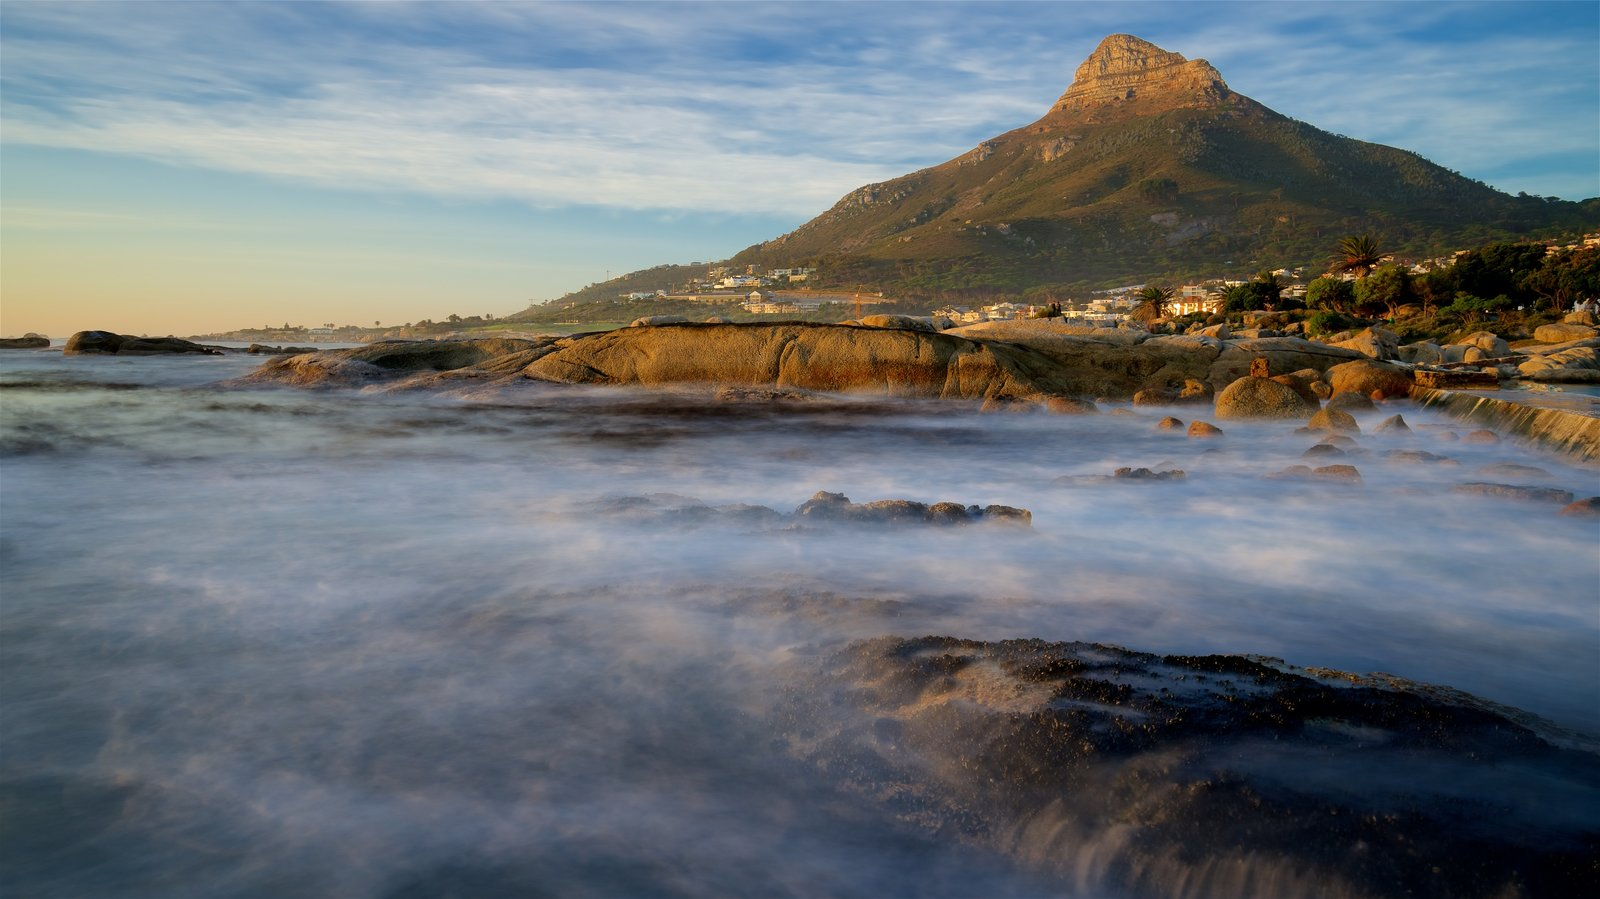 Camps Bay Beach showing waves and rocky coastline